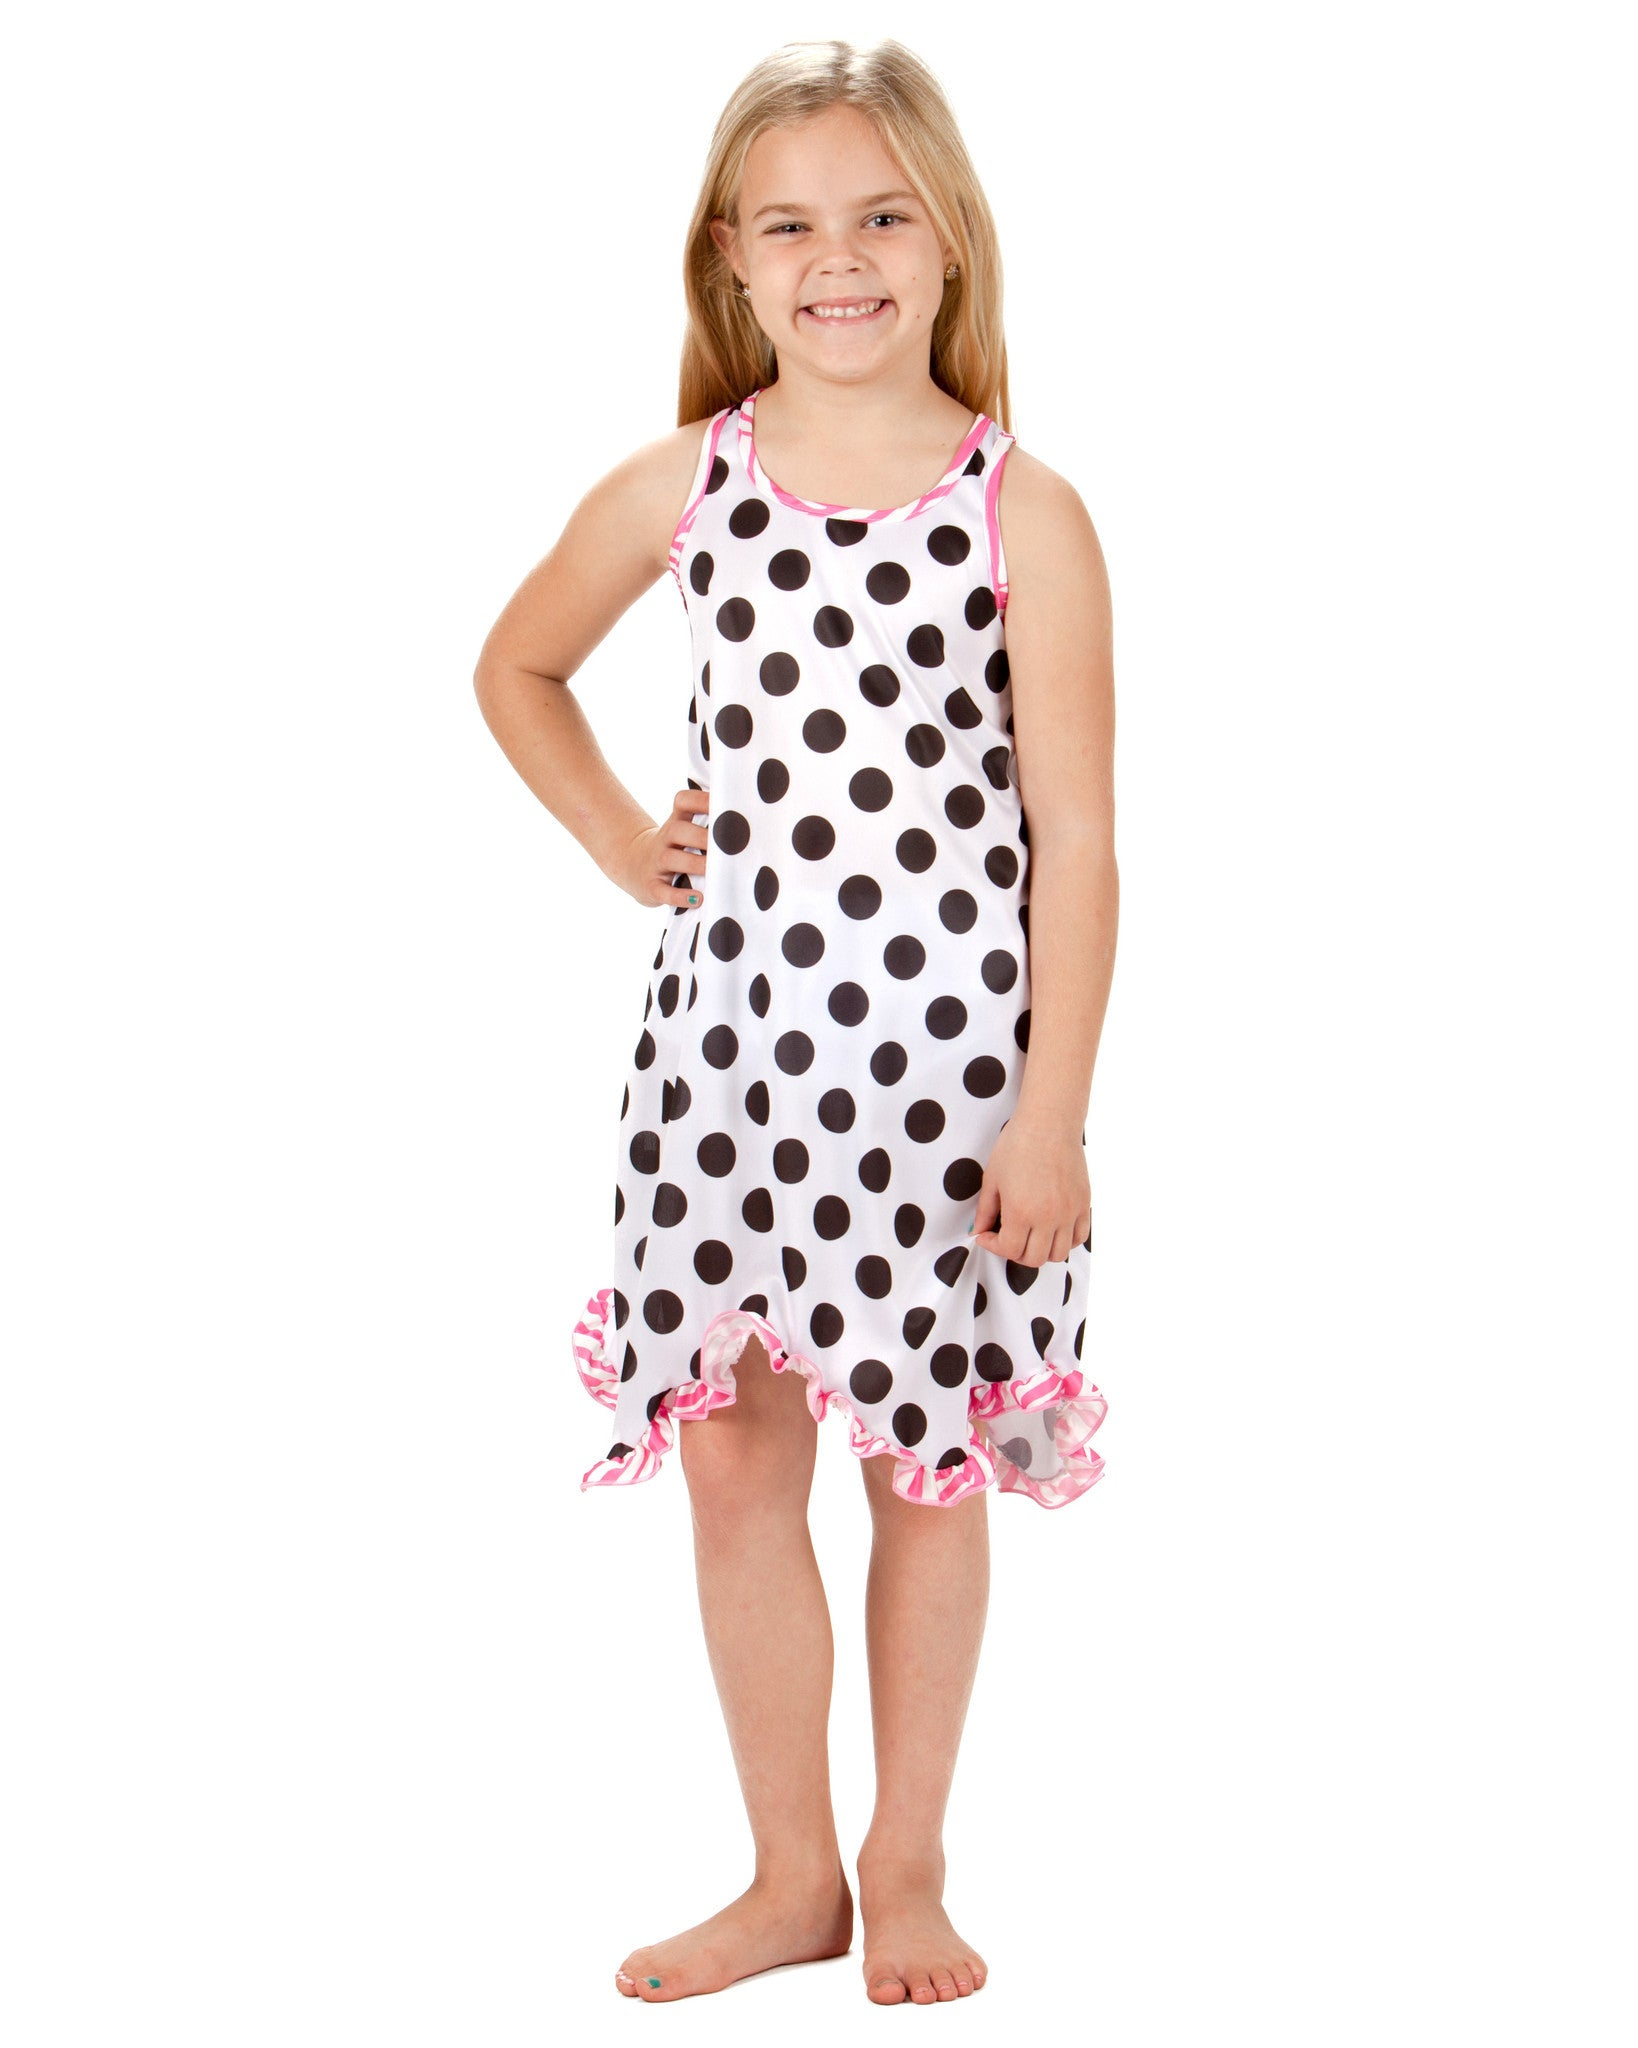 Laura Dare Connect The Dots Racerback Nightgown (4 - 14)